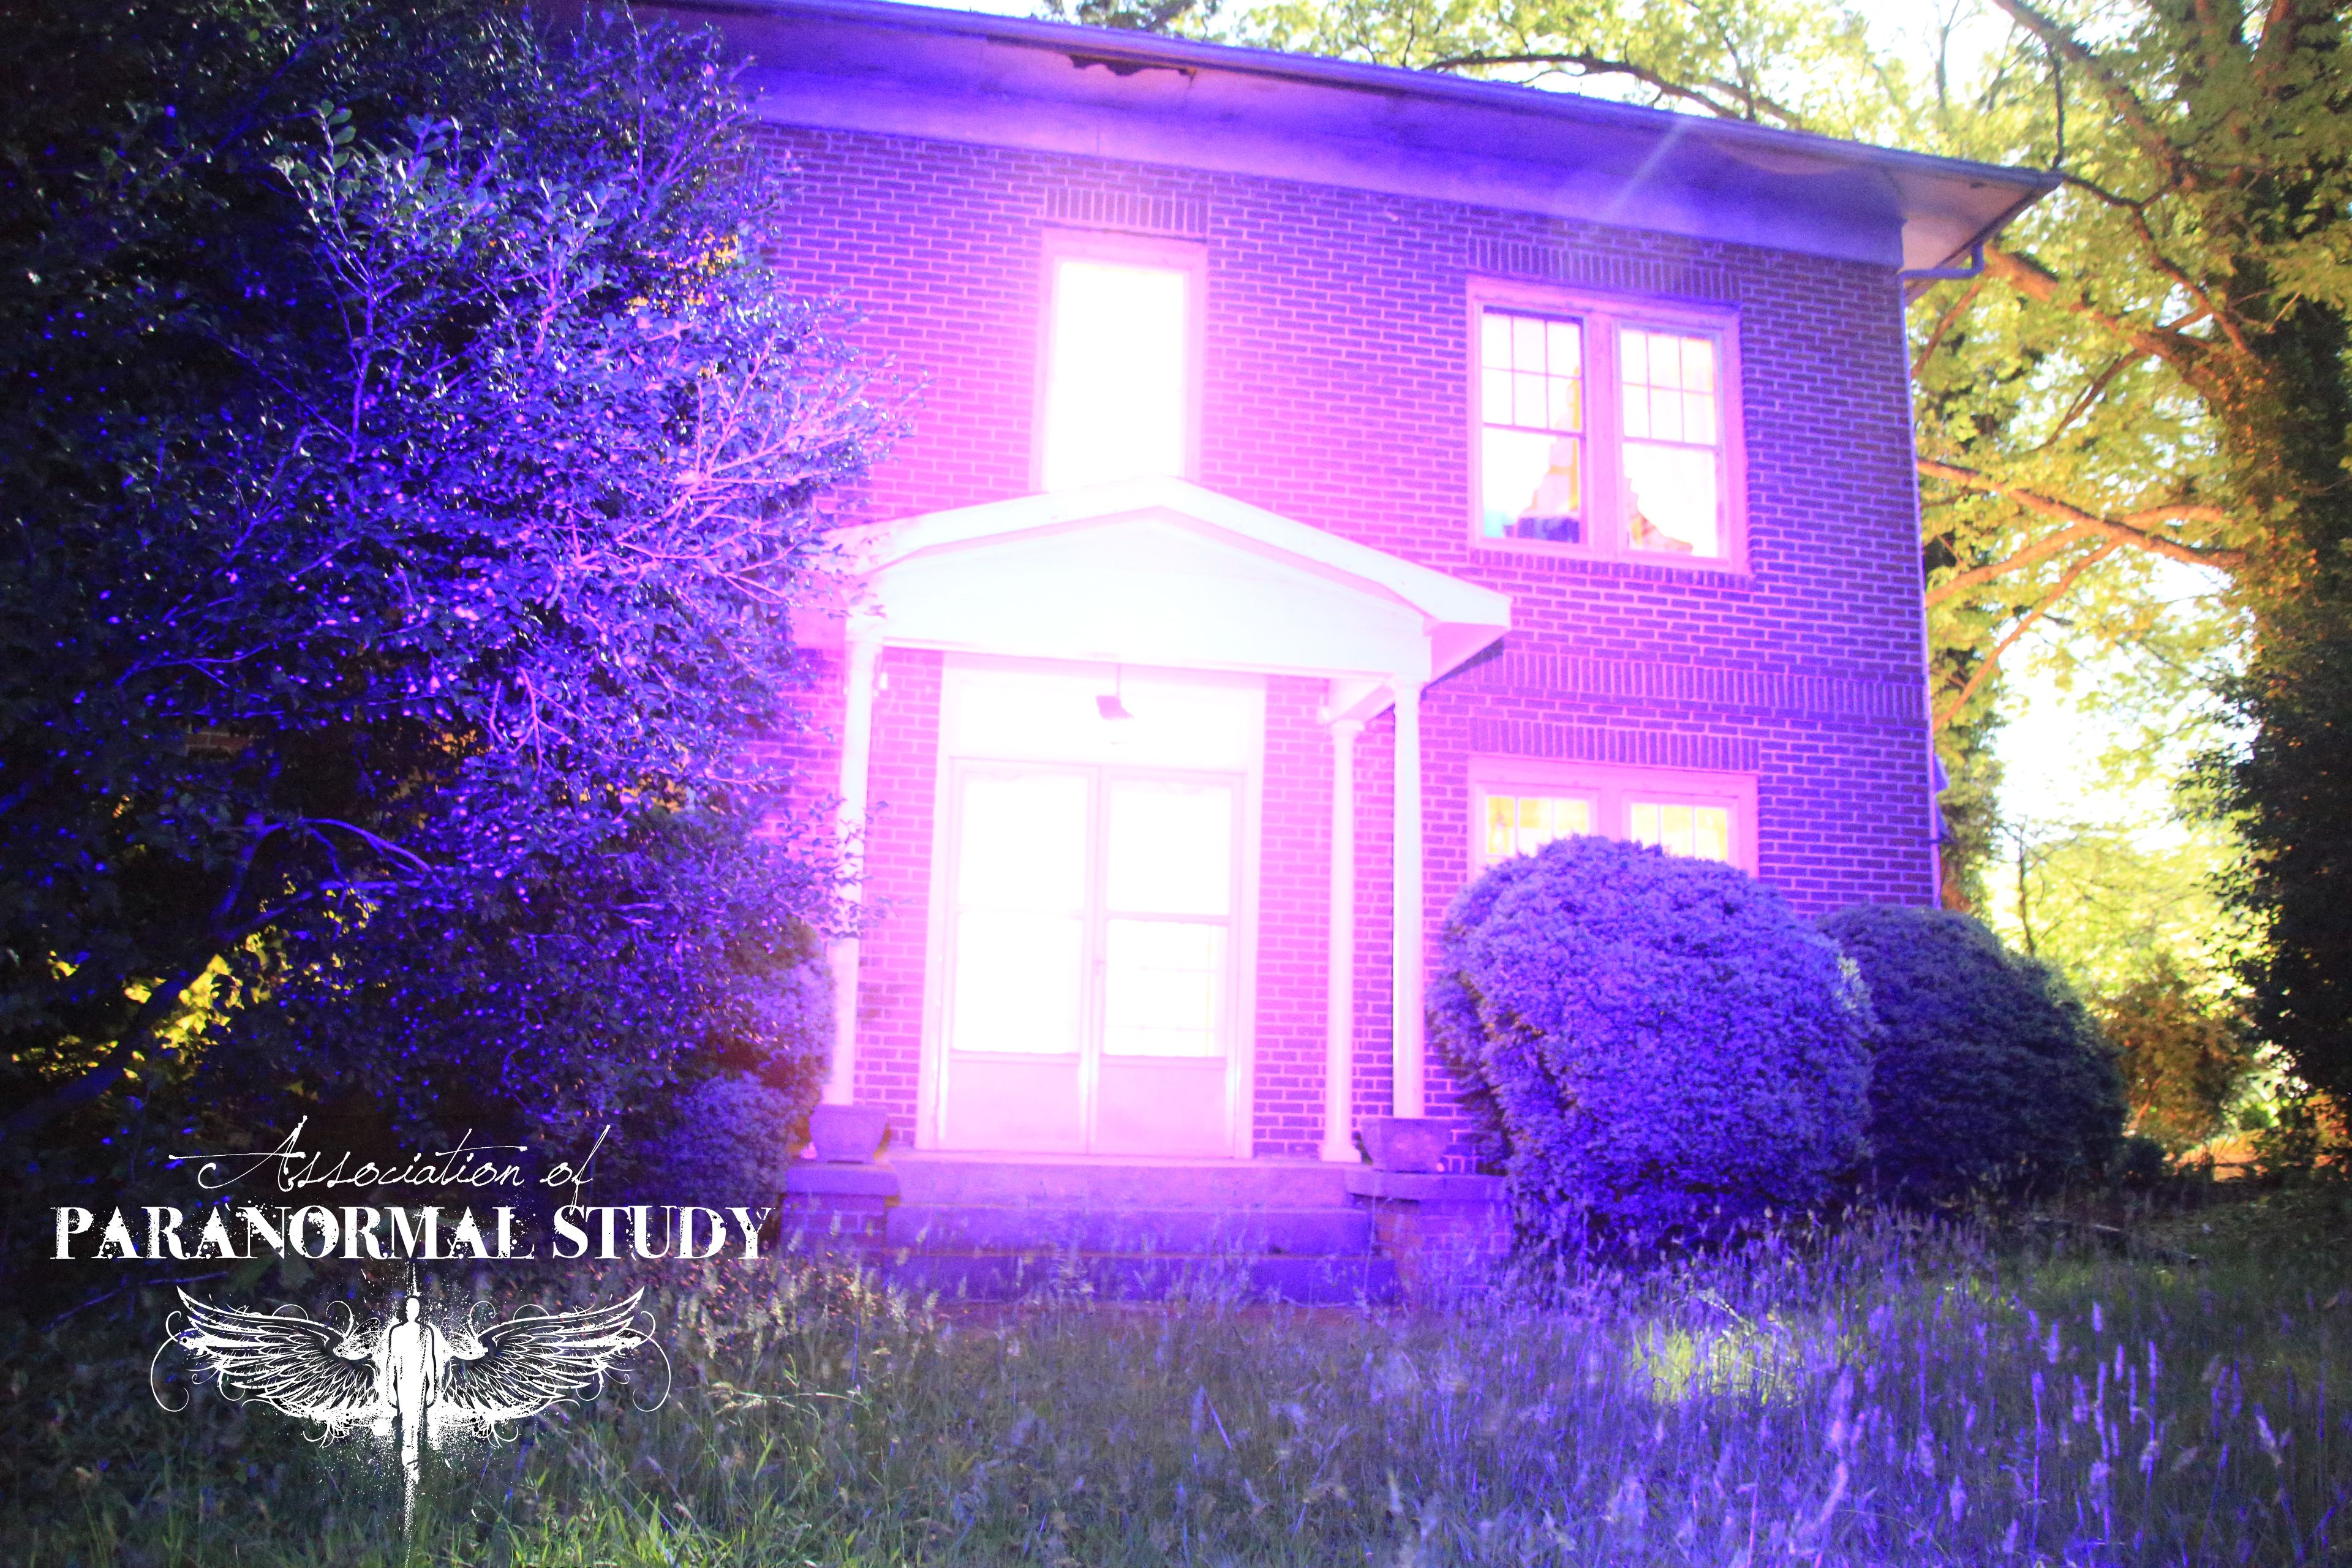 Association of Paranormal Study Triangle